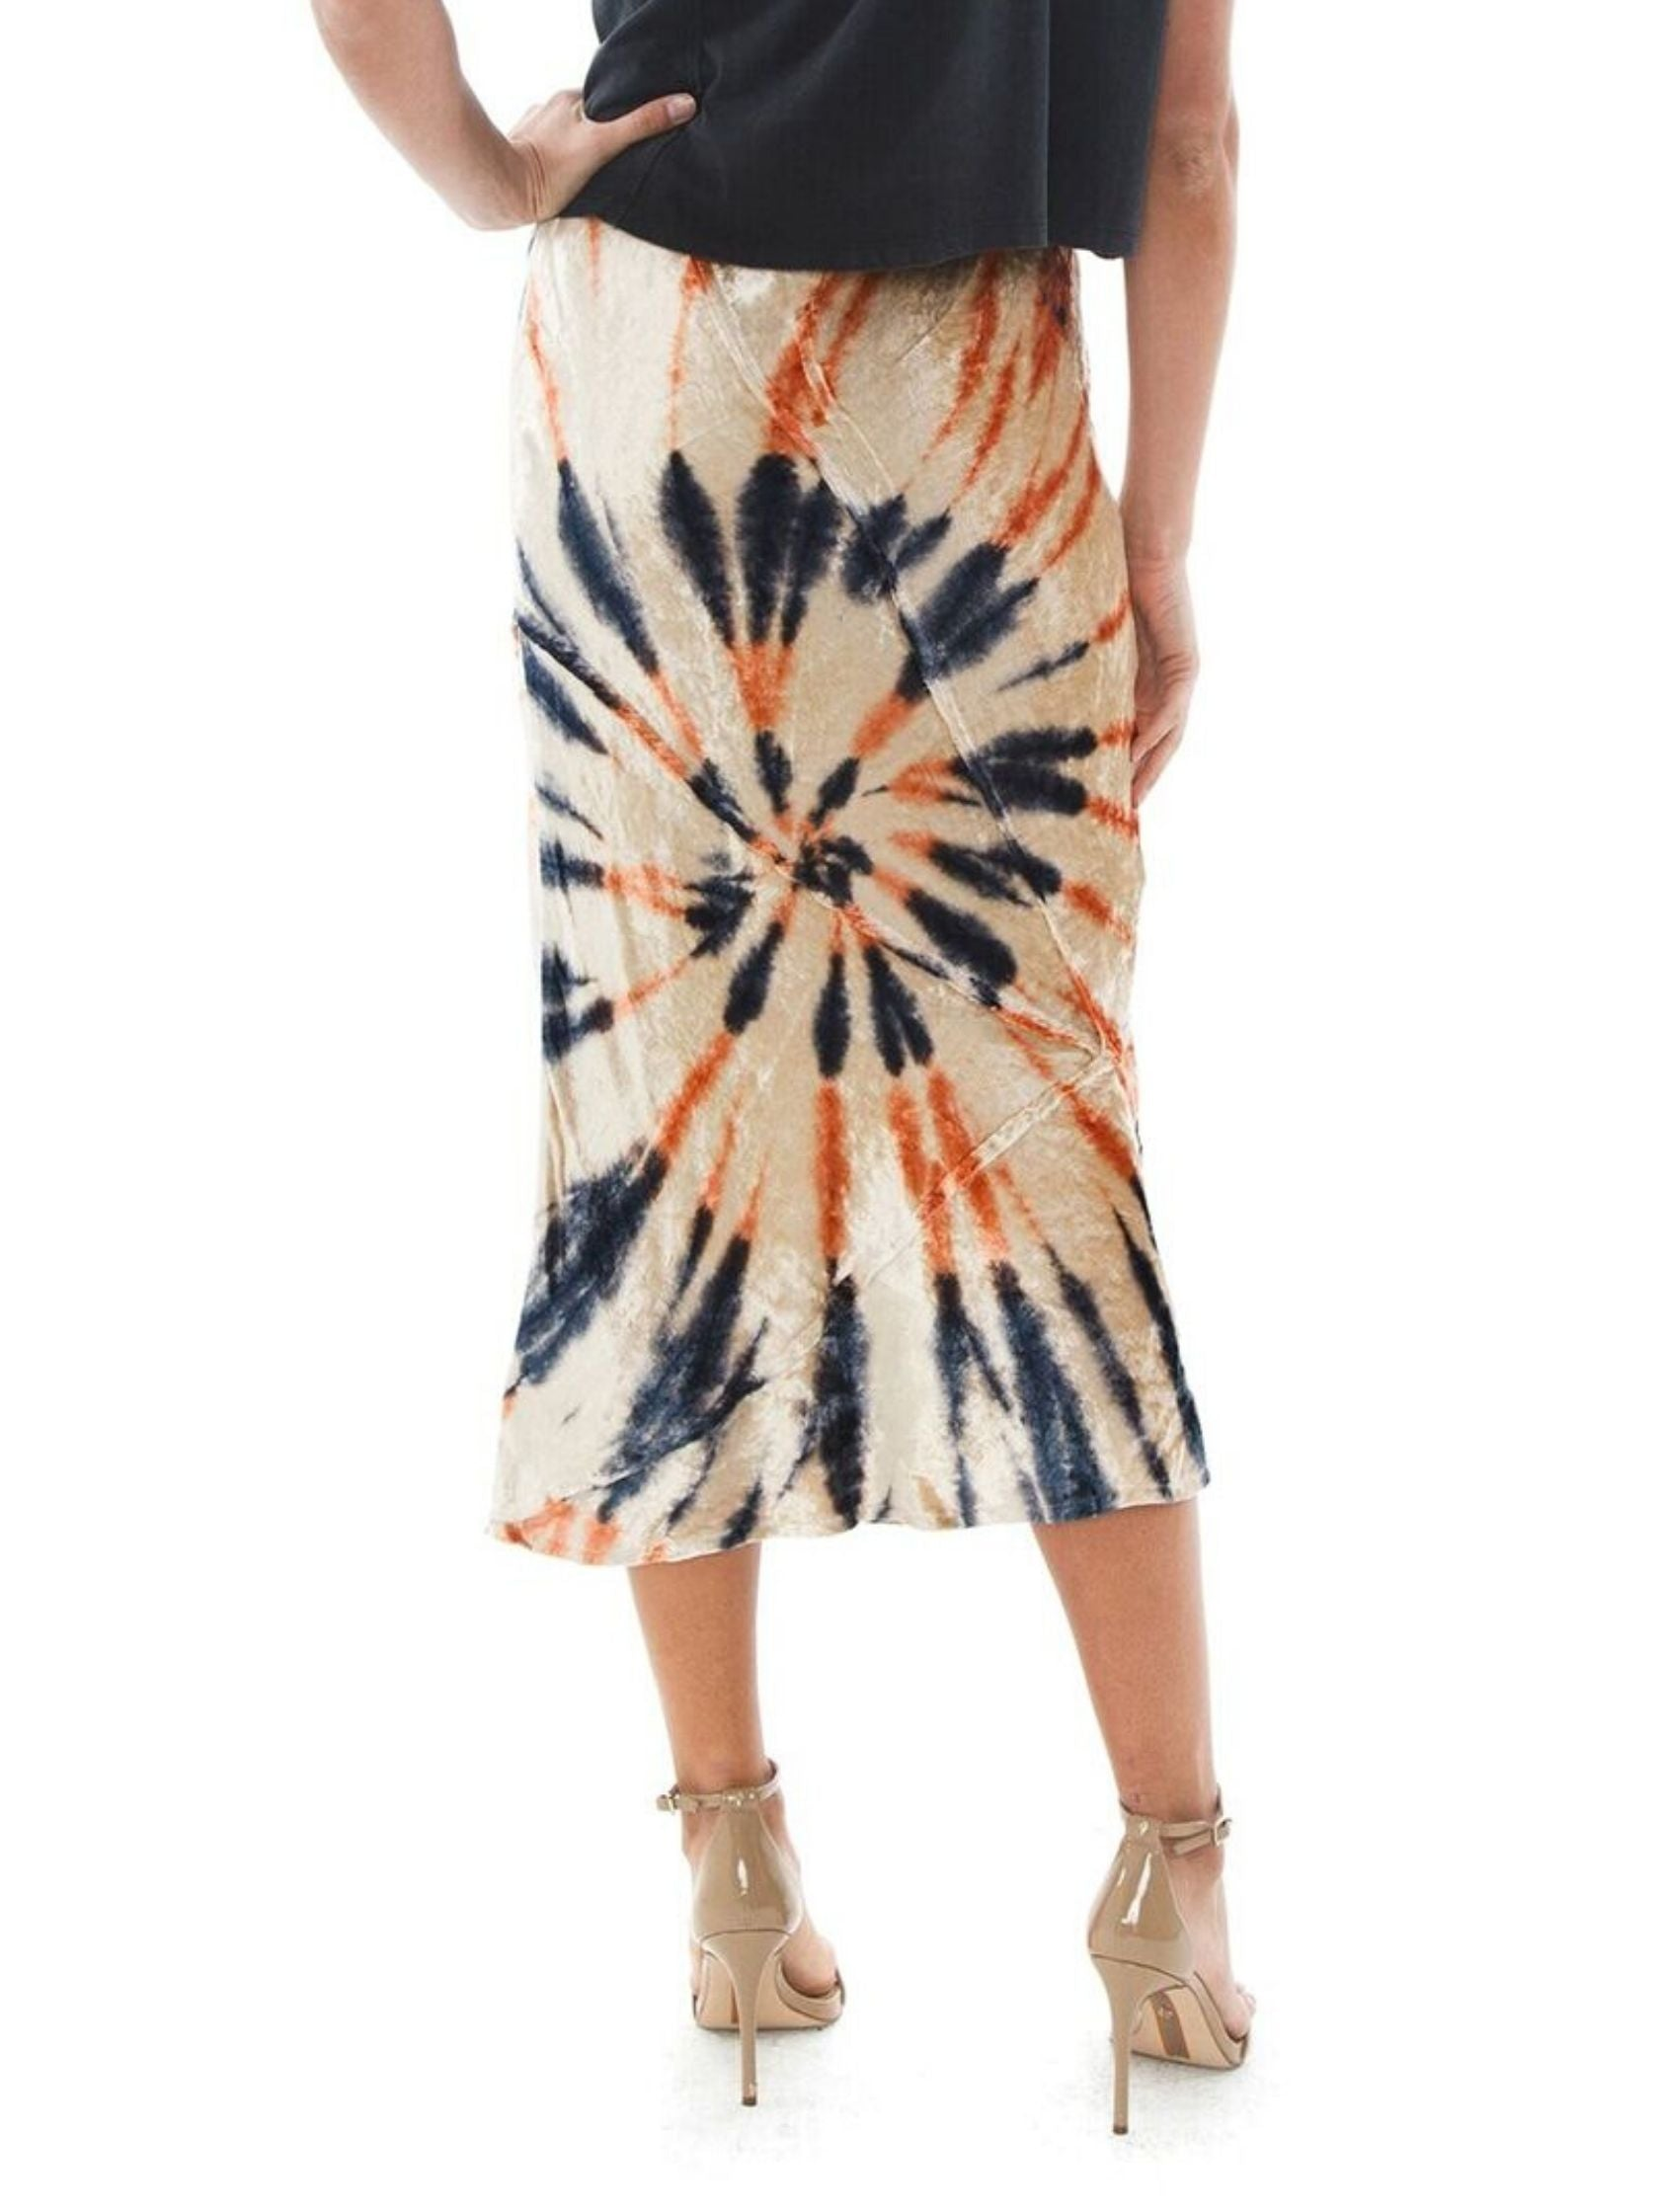 Women outfit in a skirt rental from Free People called Serious Swagger Tie Dye Skirt